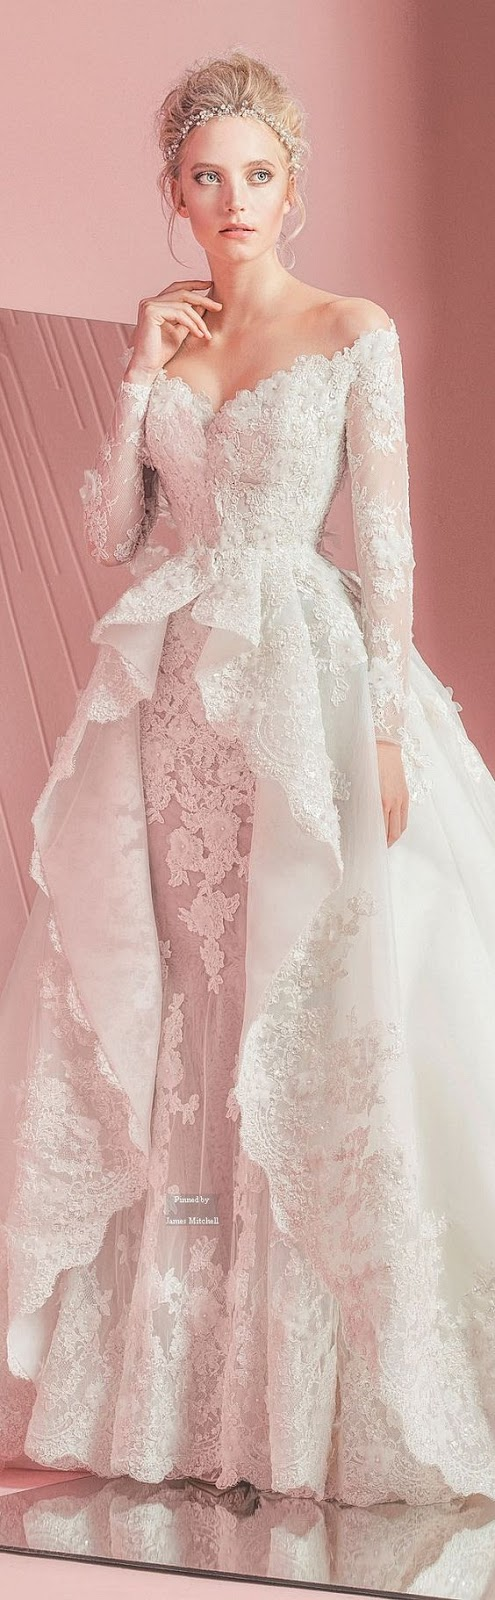 Fashion – Great Looks, What To Wear: The best sexy wedding dress and ...